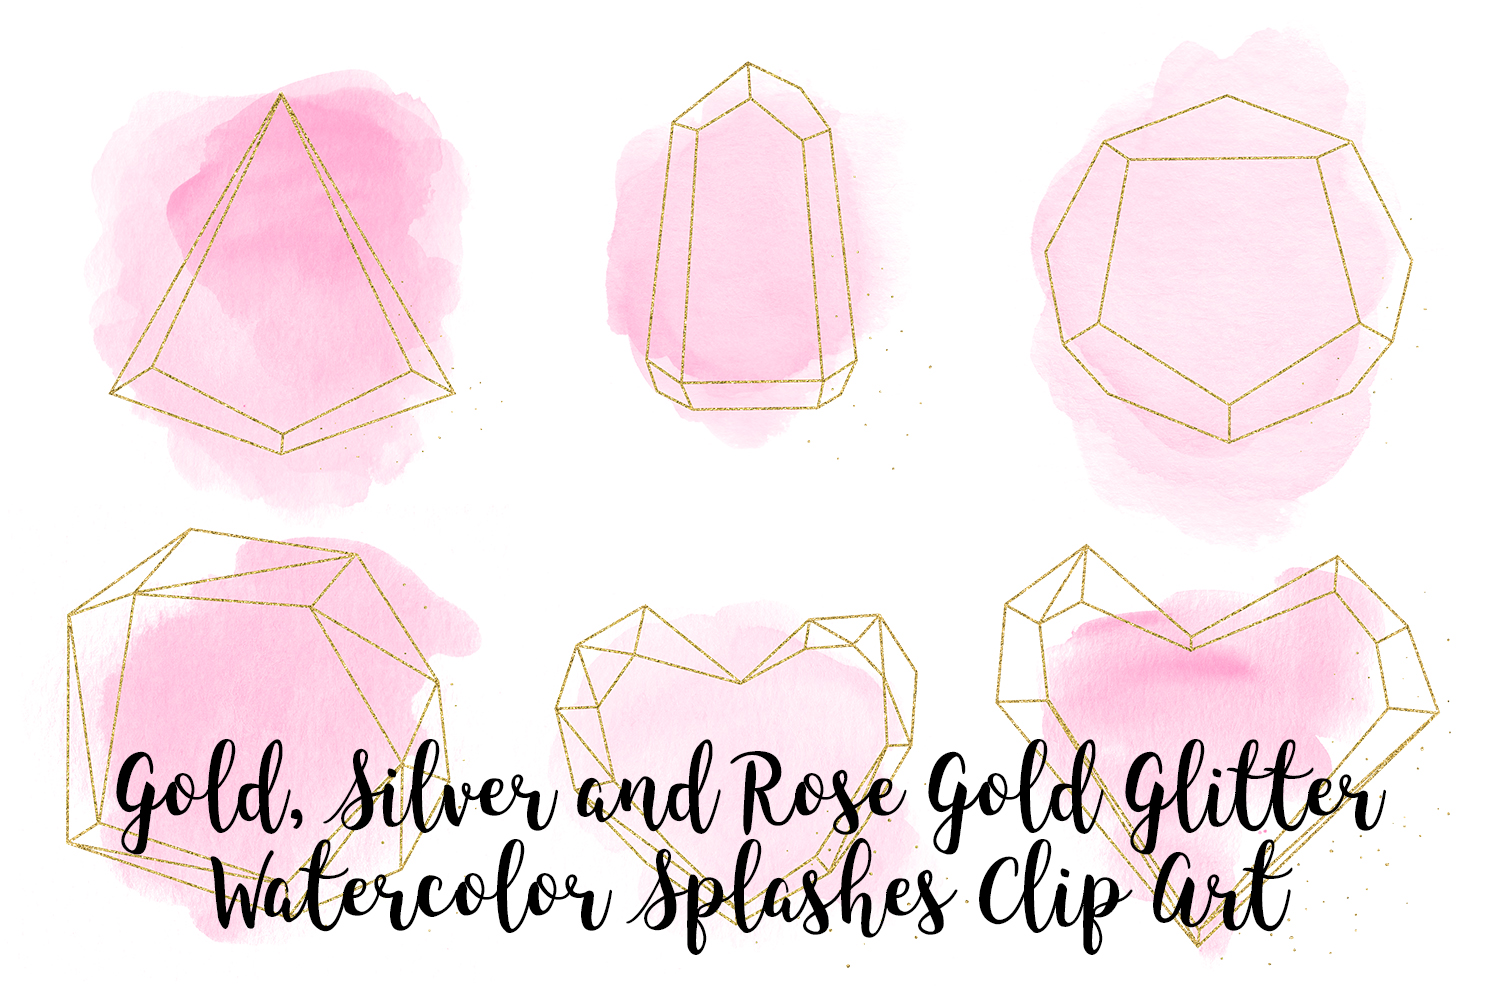 Gold, Silver and Rose Gold Crystals with Pink Watercolor example image 1